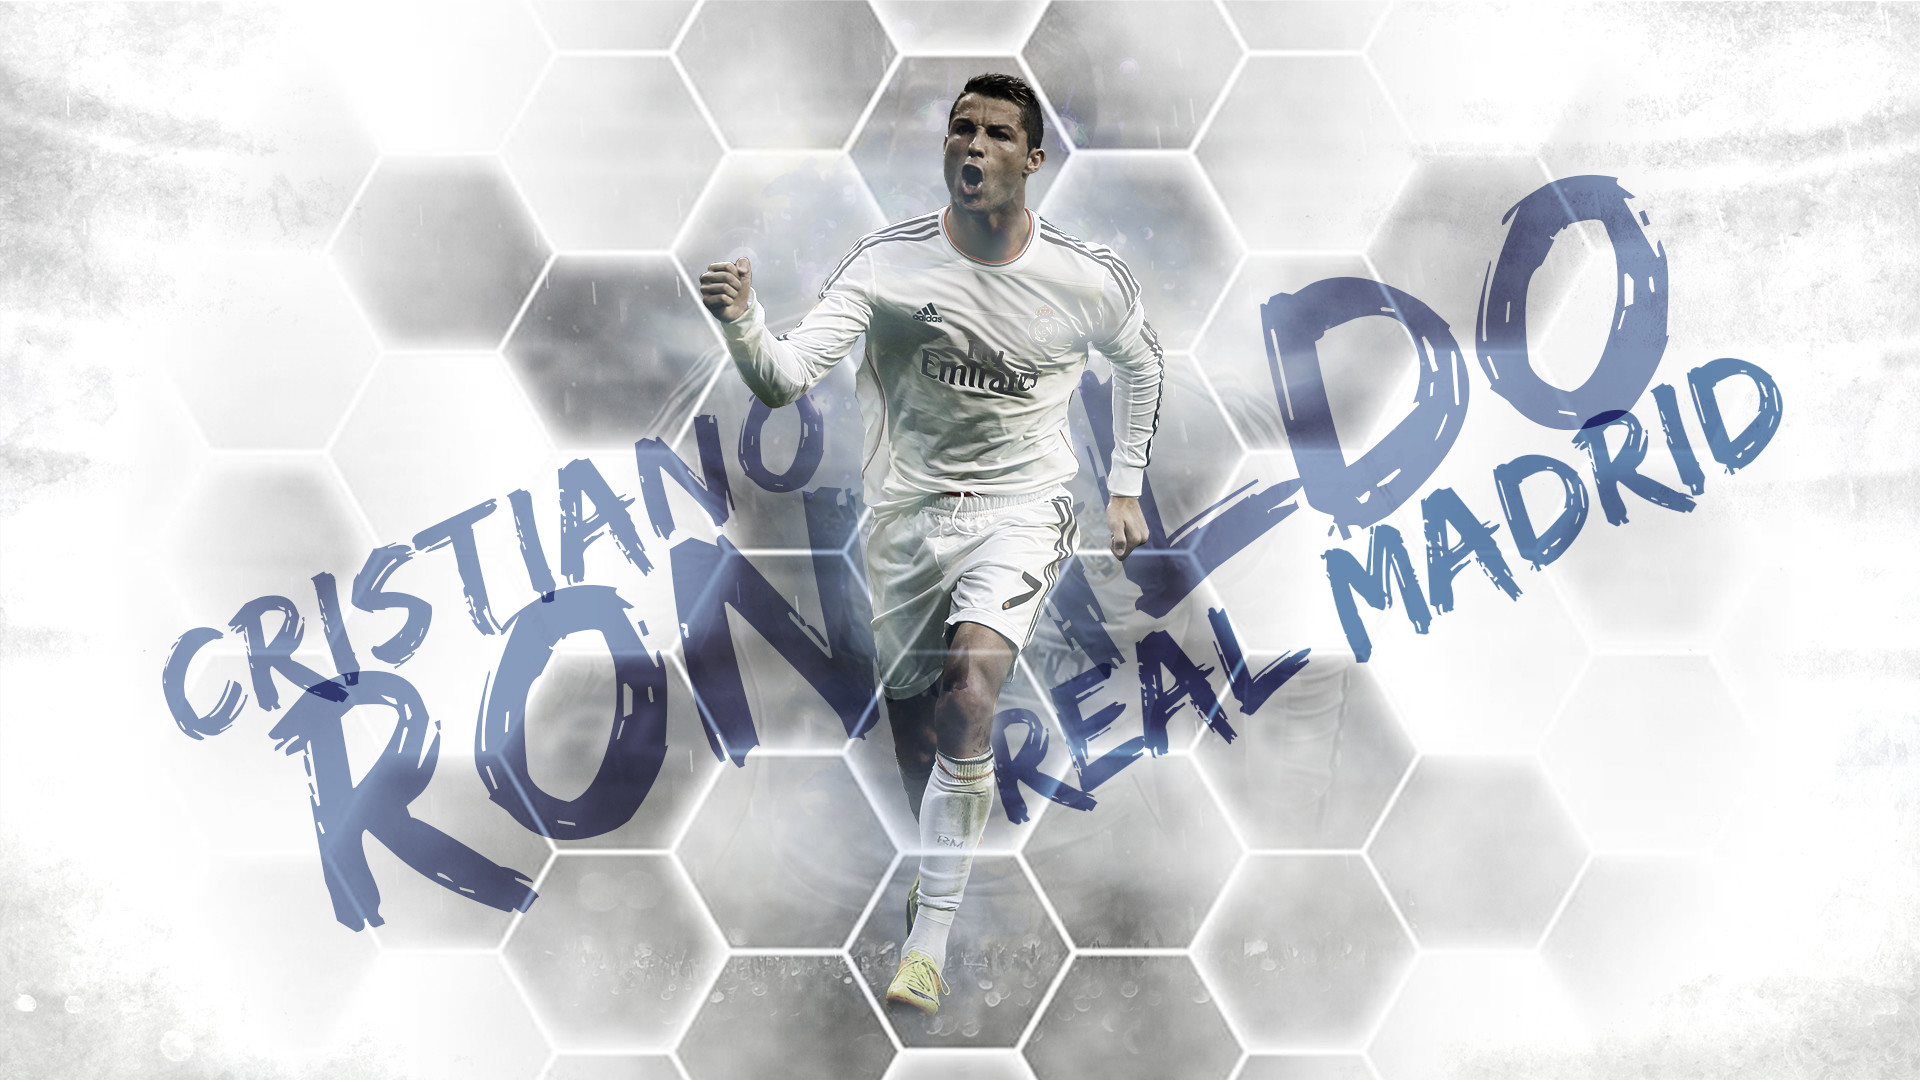 1920x1080 Cristiano-Ronaldo-Real-Madrid-Desktop-Background